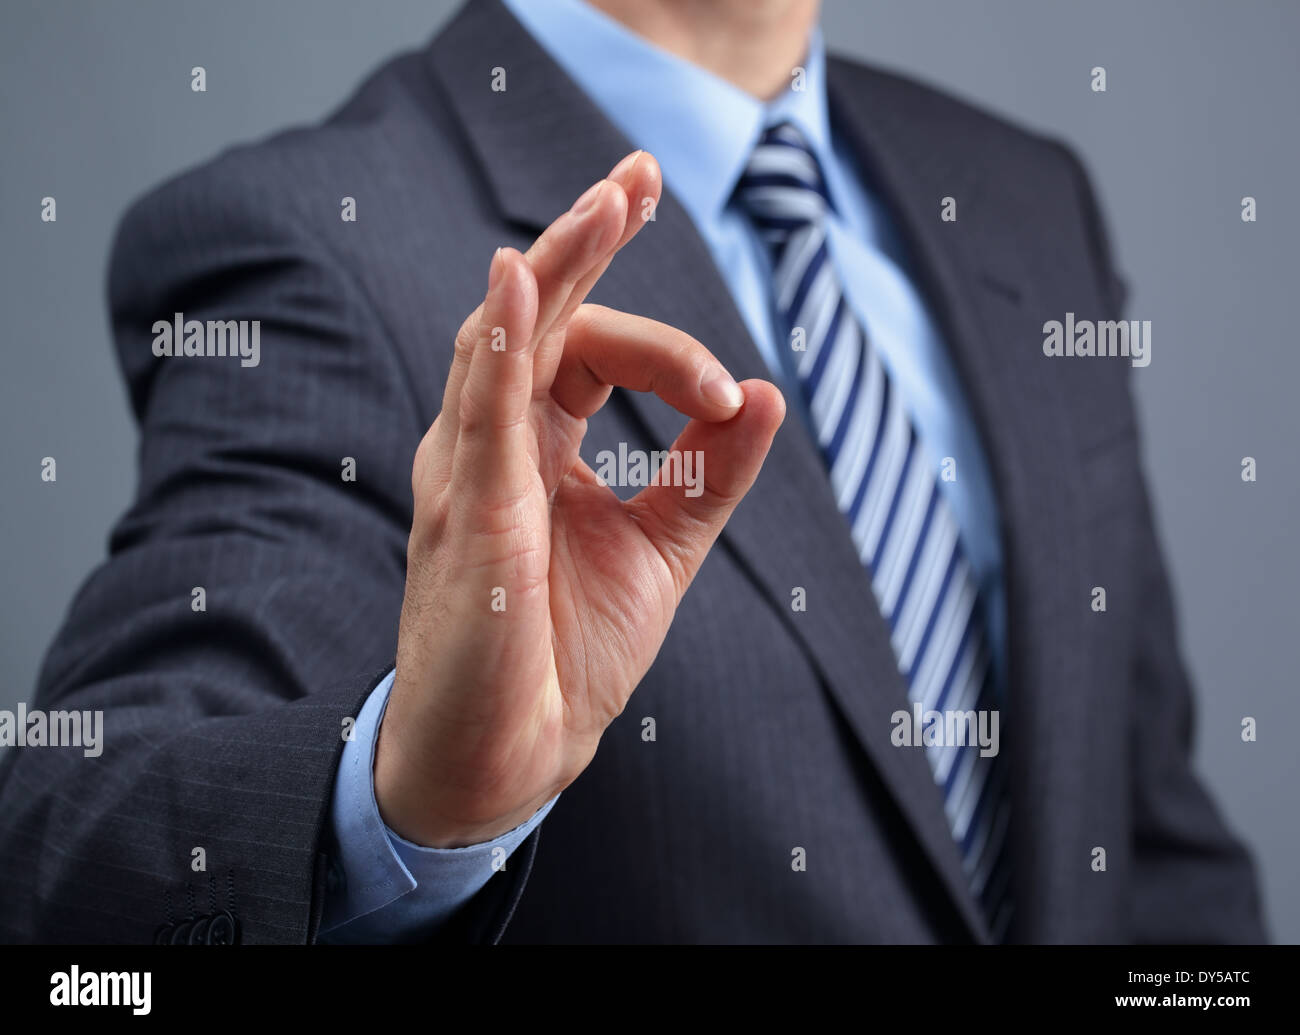 Okay sign - Stock Image